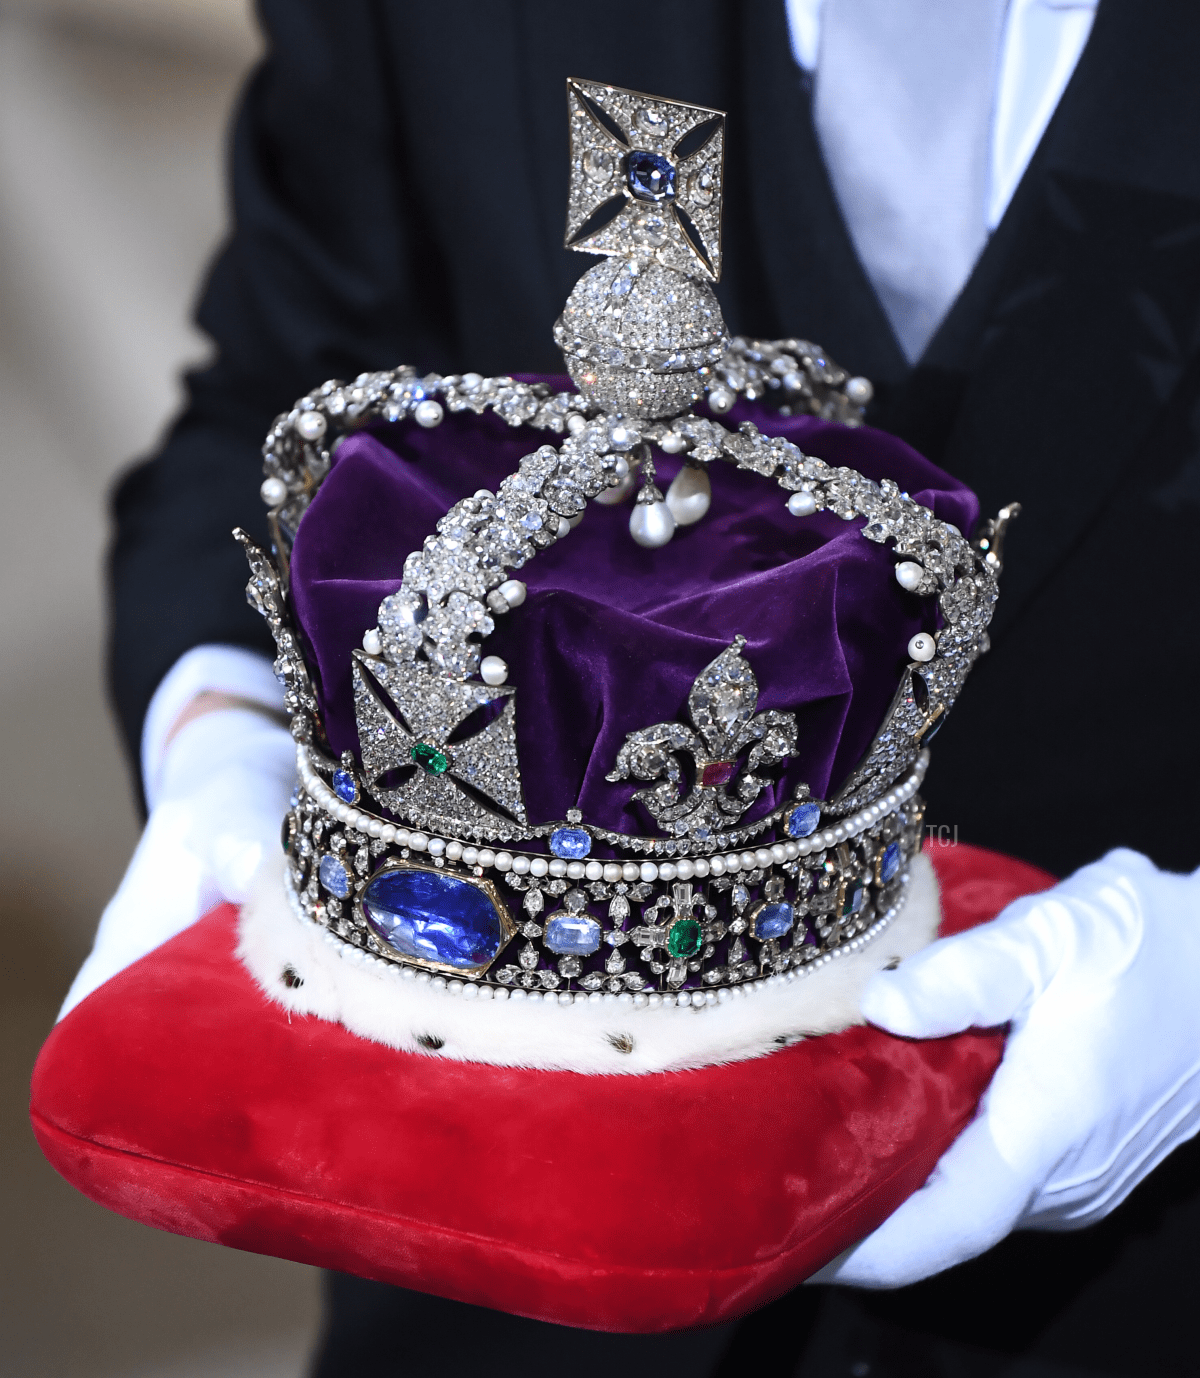 The Imperial State Crown is carried through the Sovereign's entrance ahead of the state opening of parliament at the Houses of Parliament on December 19, 2019 in London